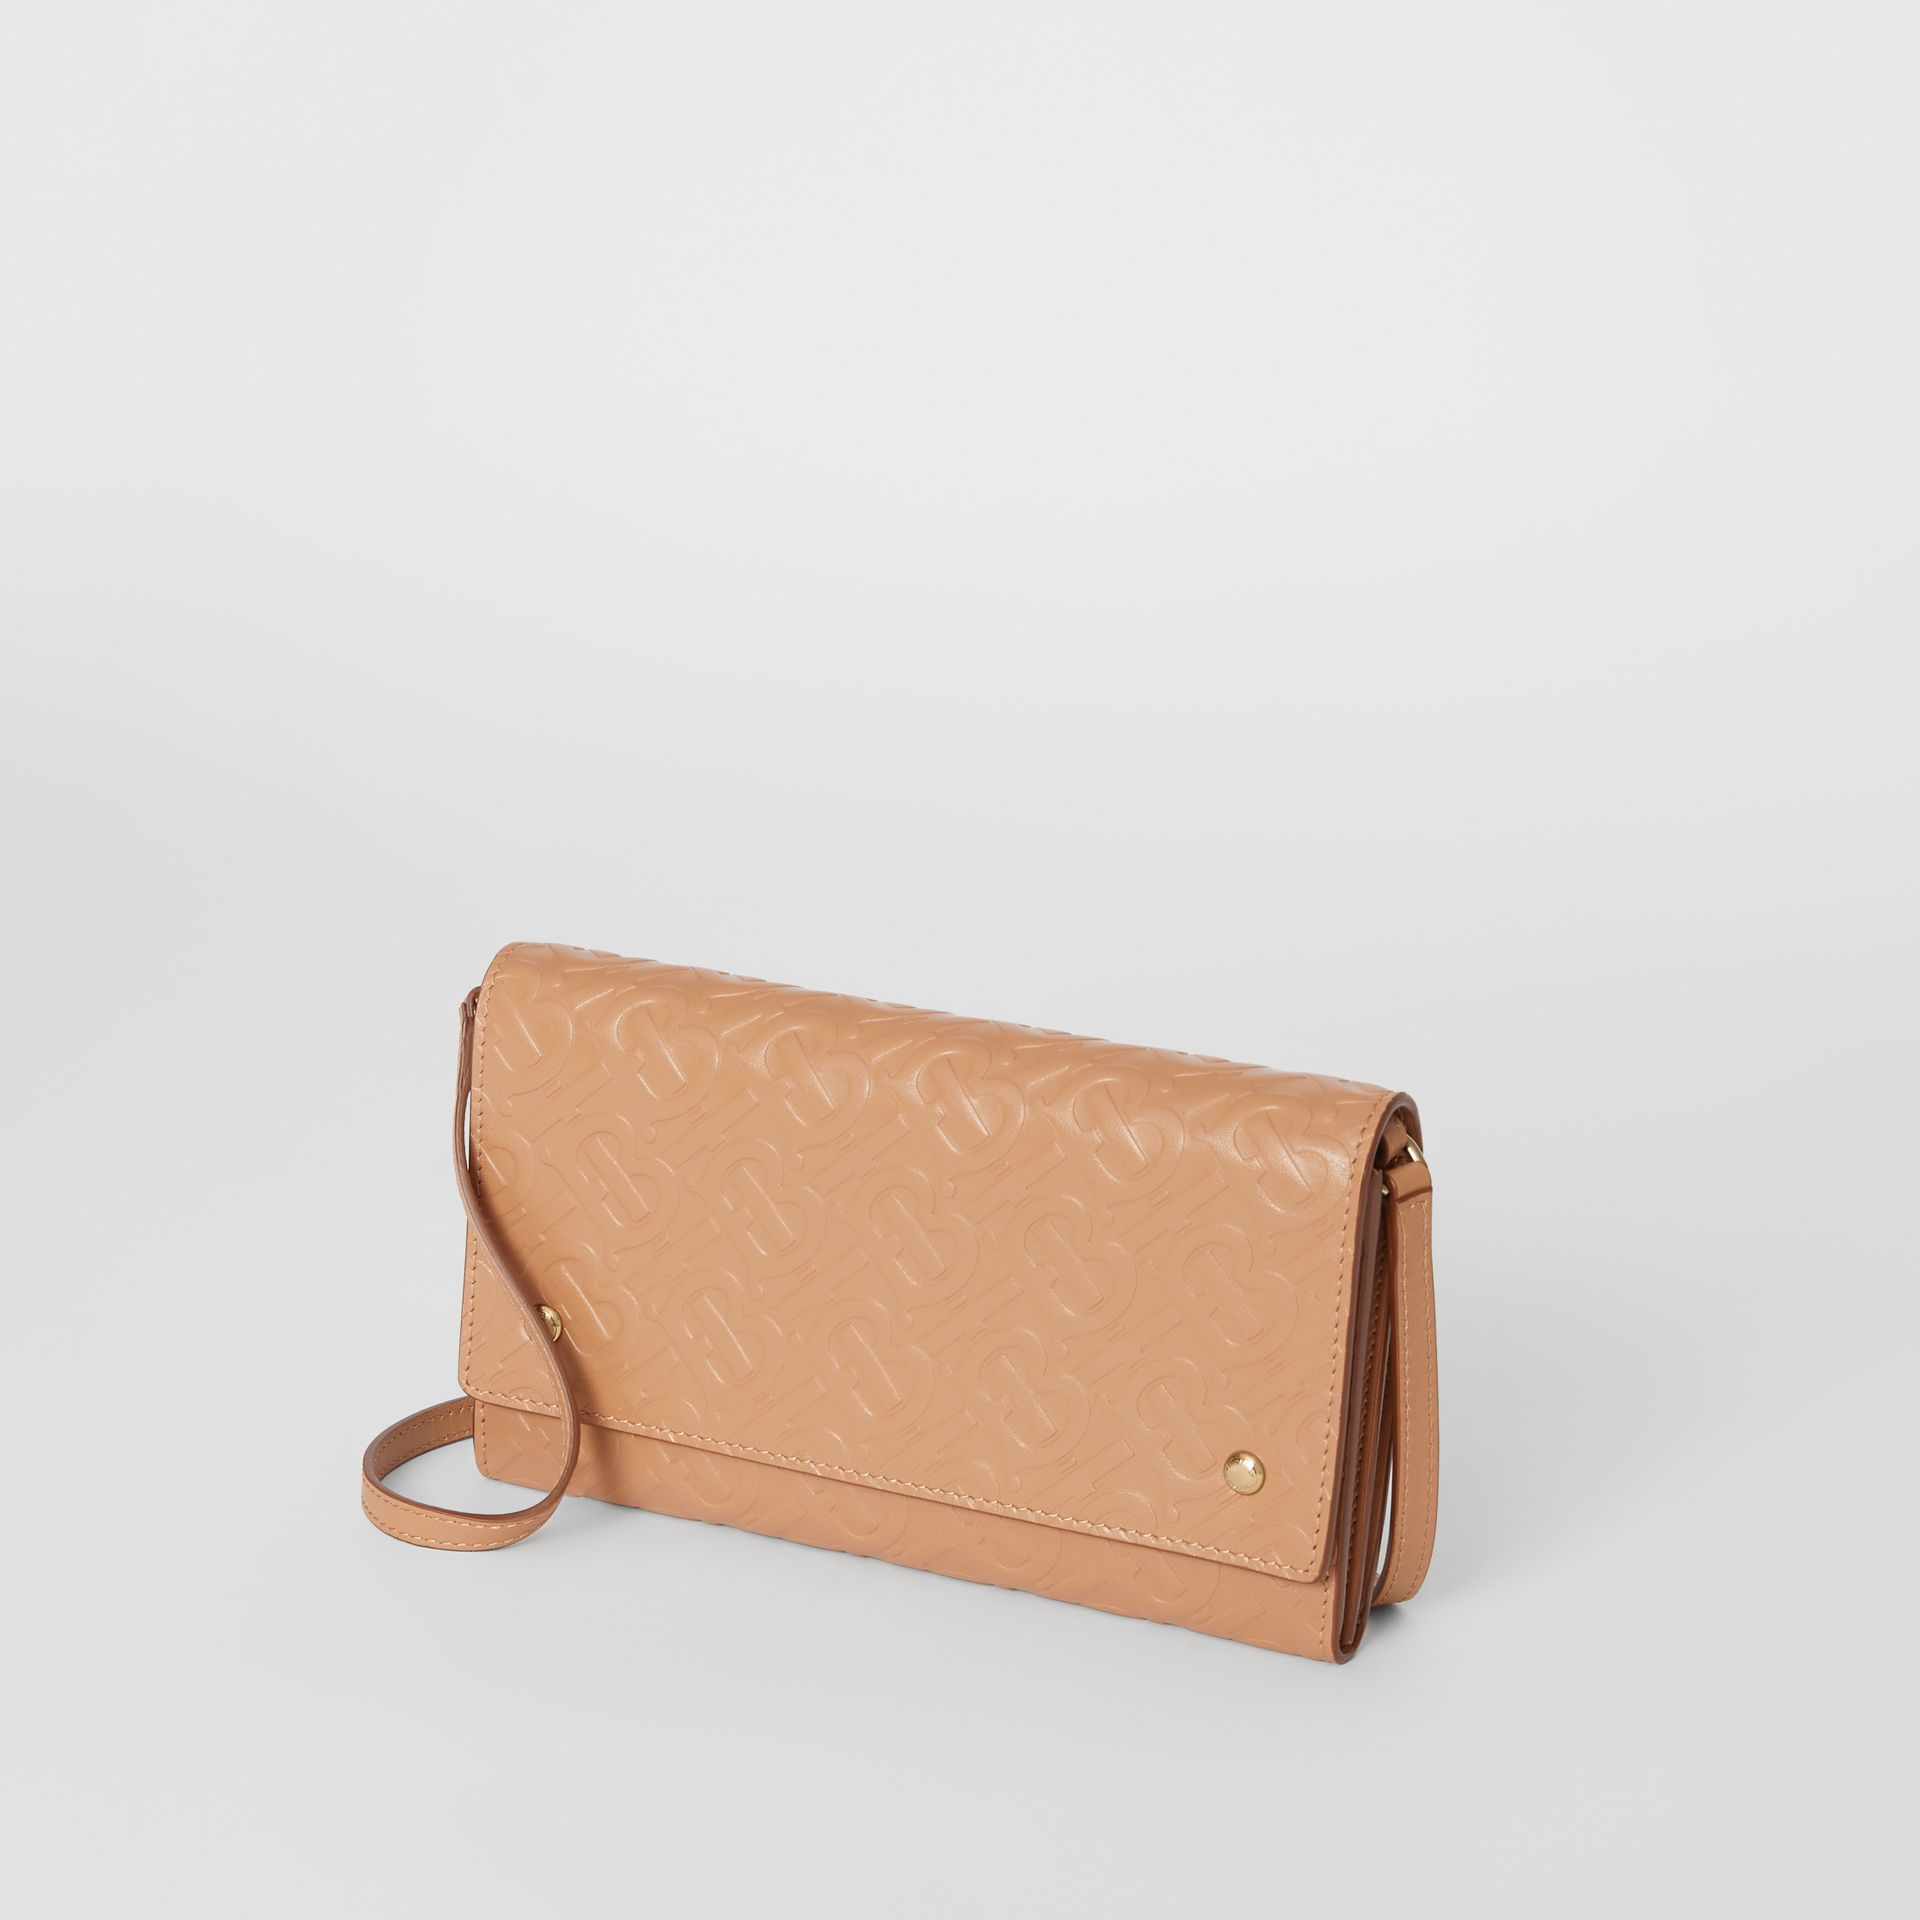 Monogram Leather Wallet with Detachable Strap in Light Camel - Women | Burberry Singapore - gallery image 4